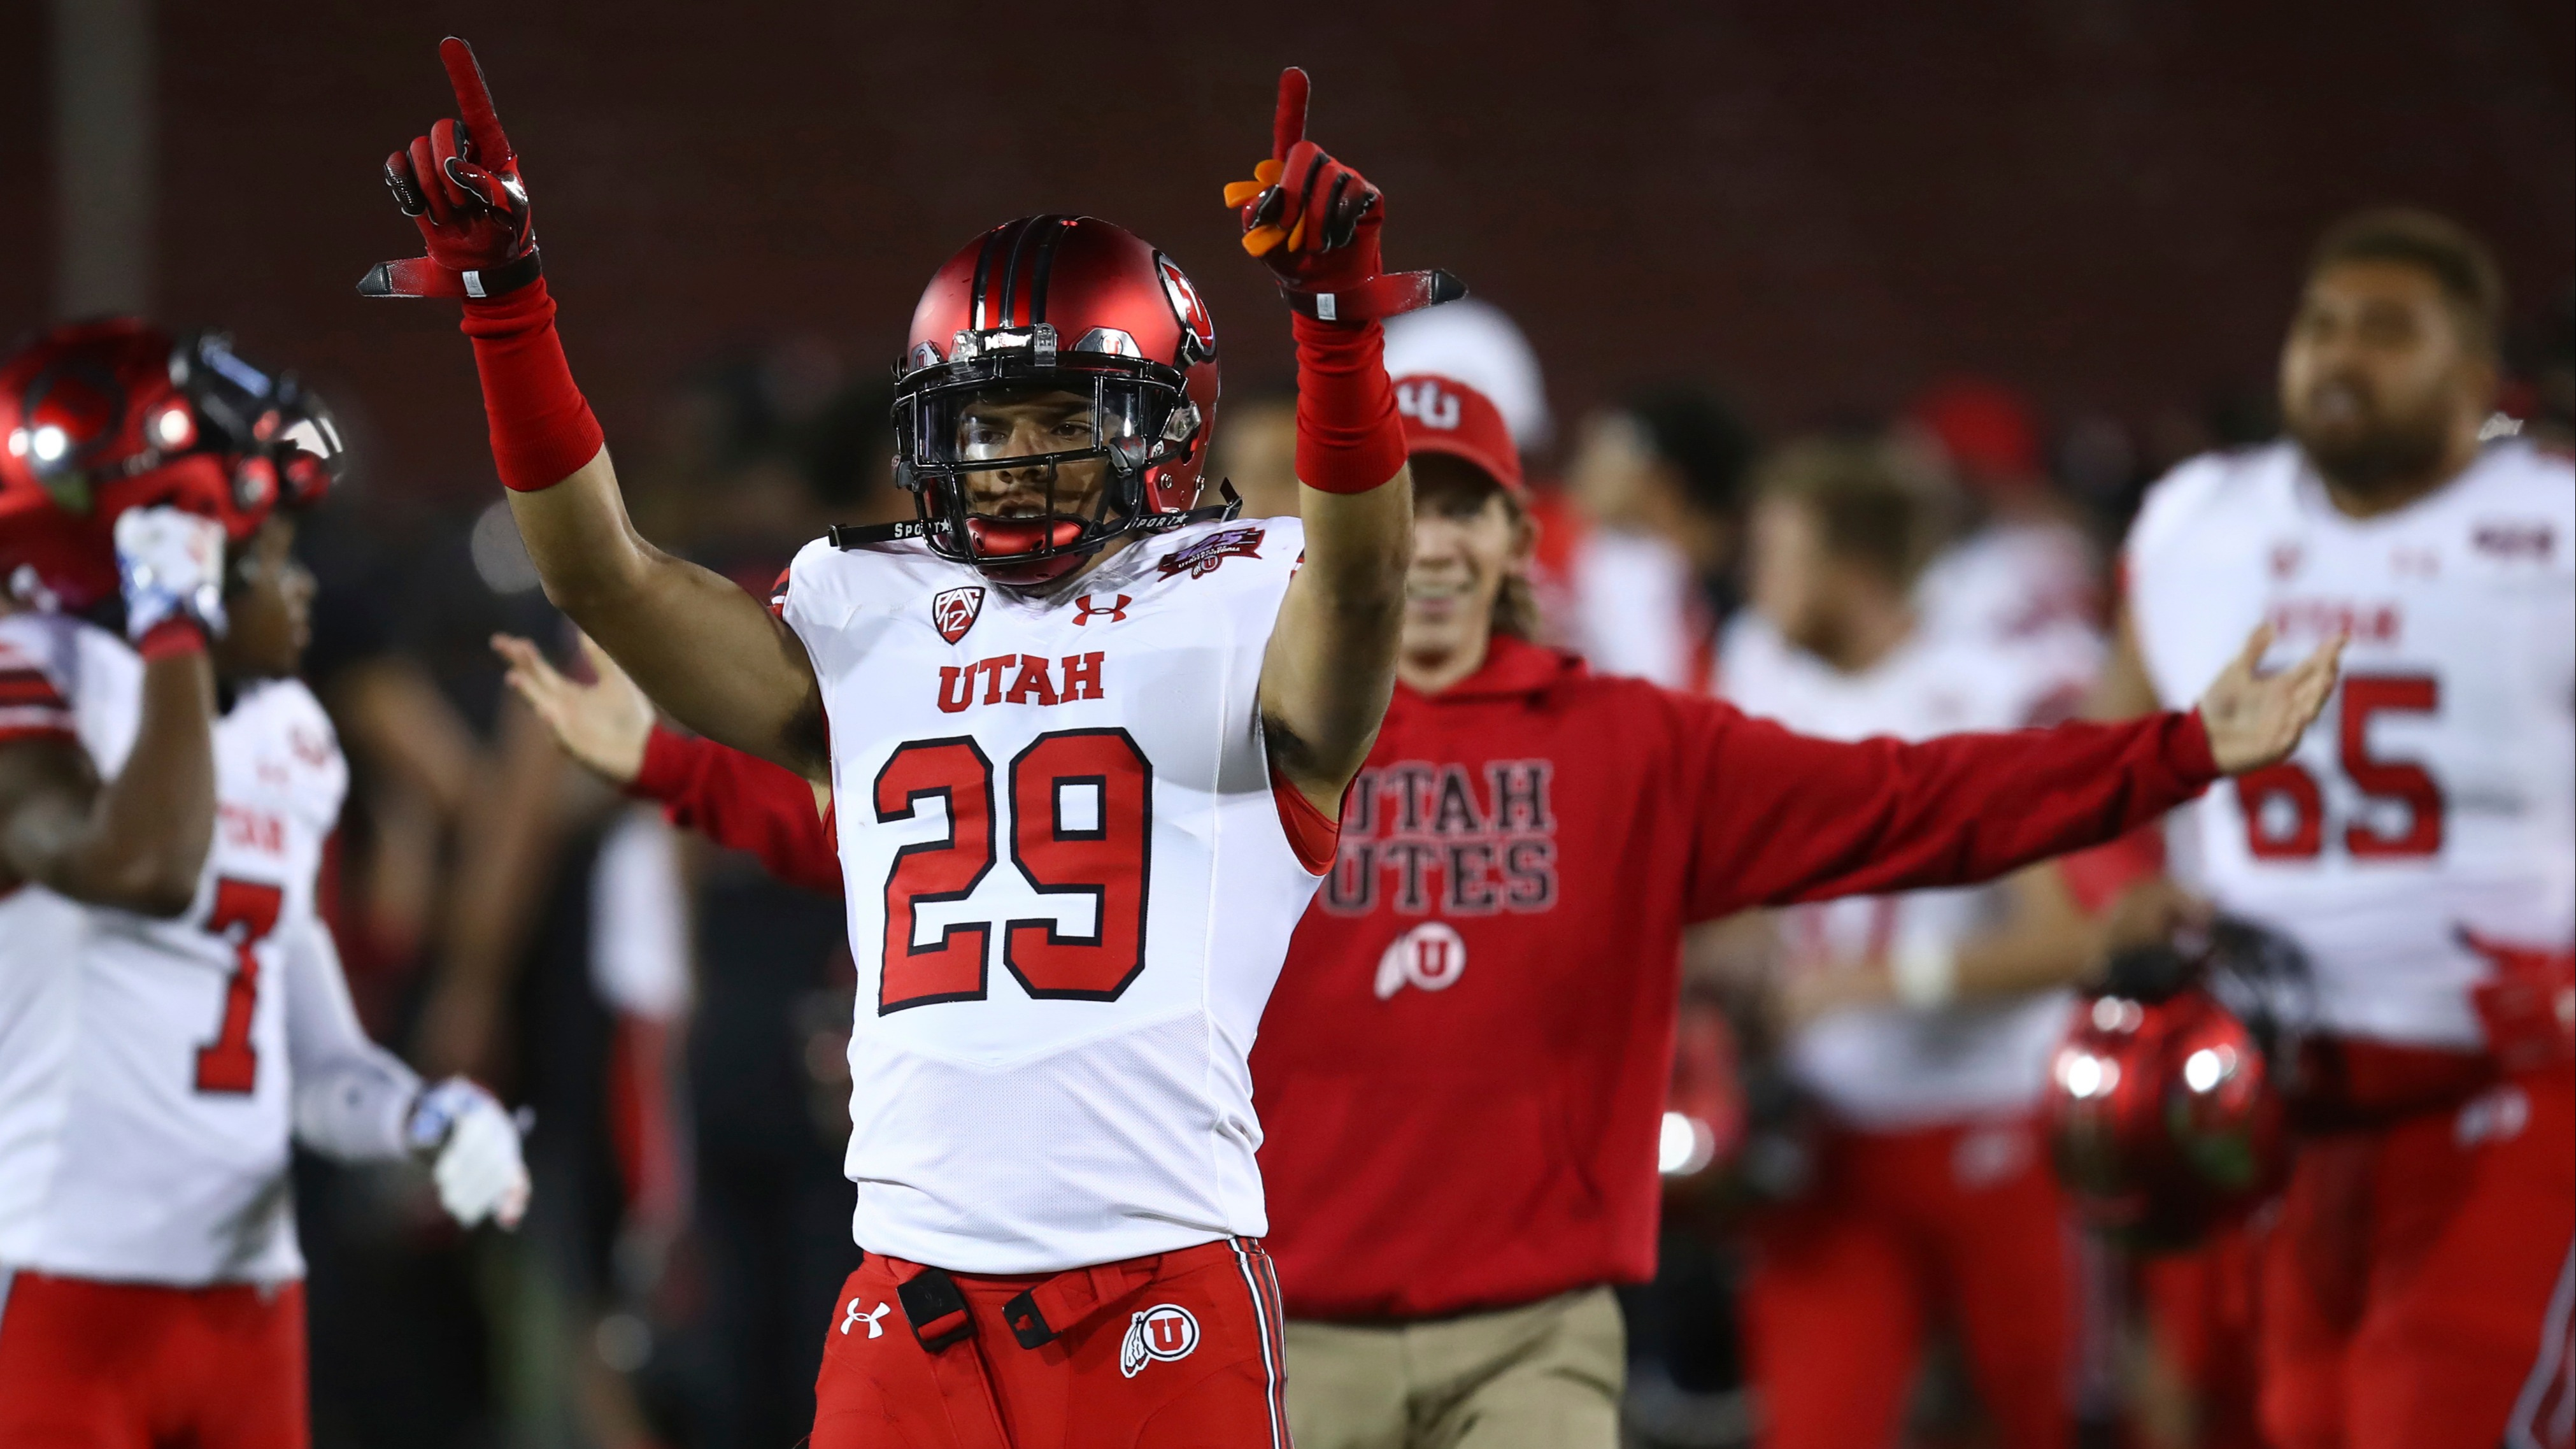 Utah football betting line crs-4638 oracle high availability services is online betting